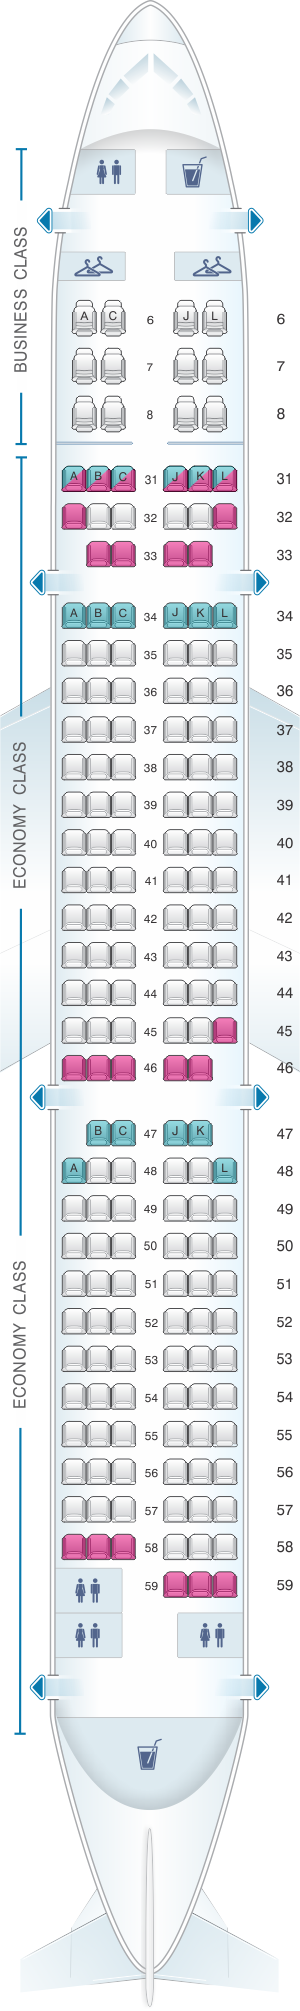 Seat map for China Eastern Airlines Airbus A321 200 178PAX